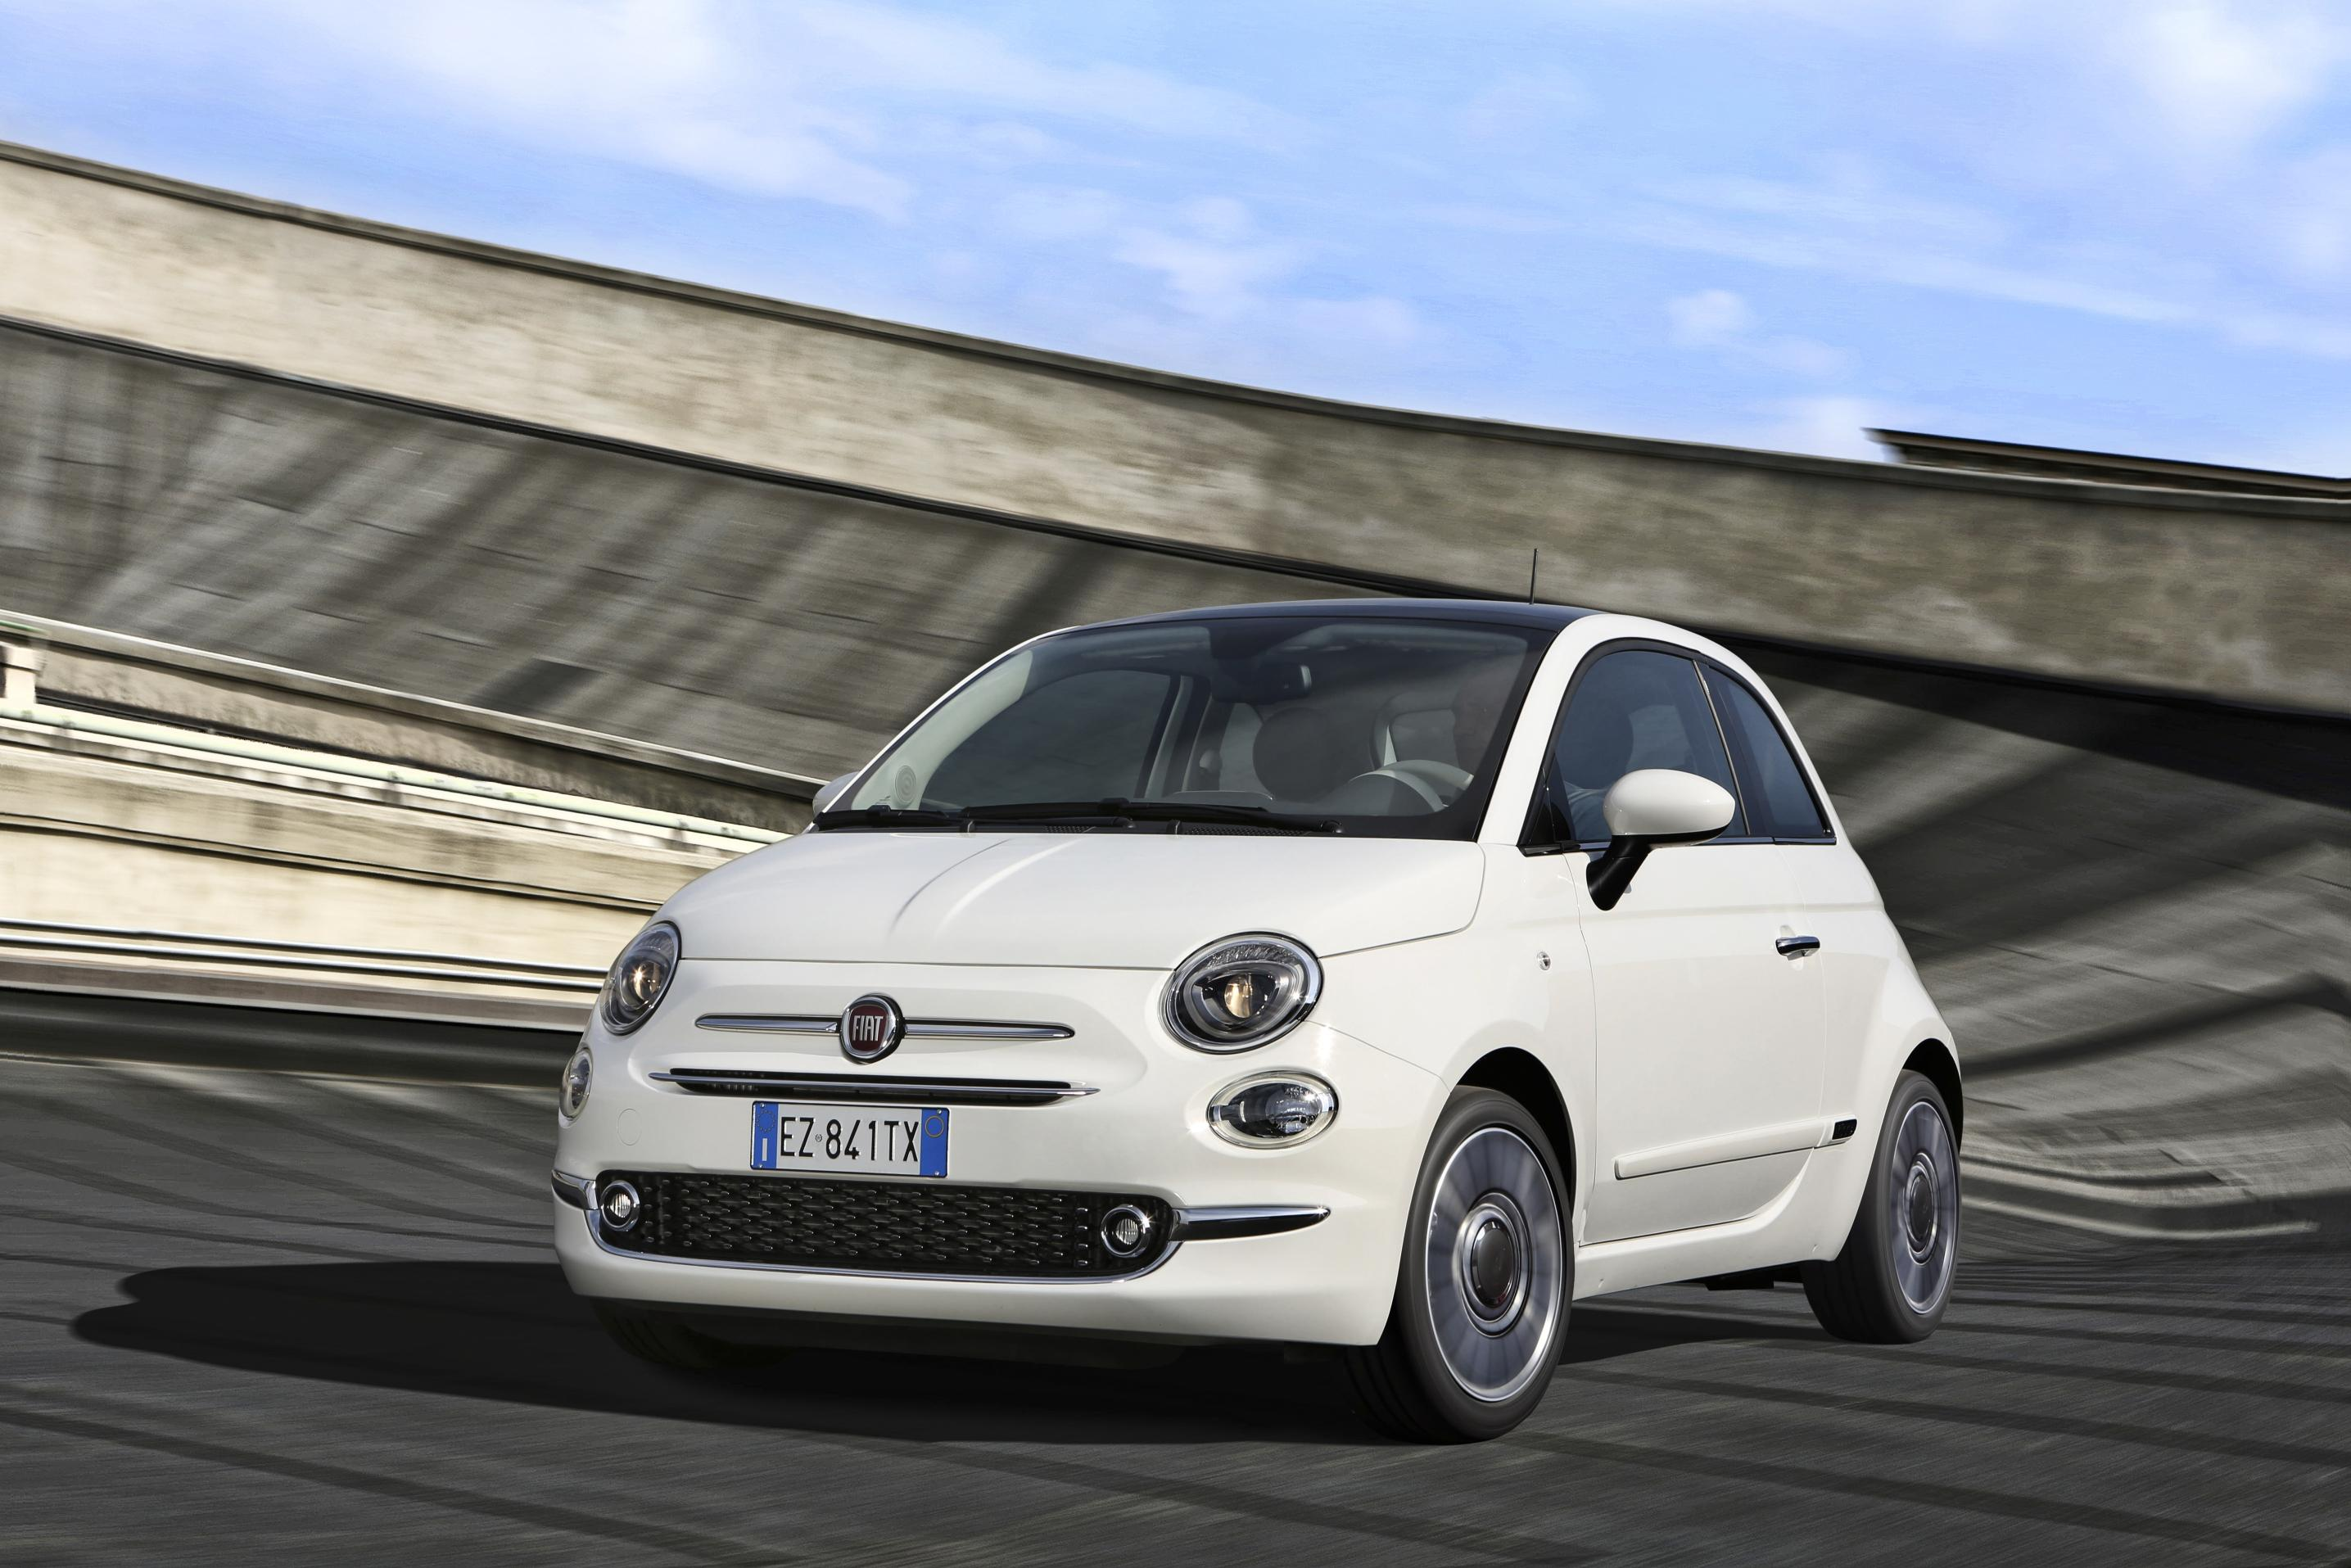 fiat debuts new 500 1 3 multijet ii engine with 95 hp autoevolution. Black Bedroom Furniture Sets. Home Design Ideas